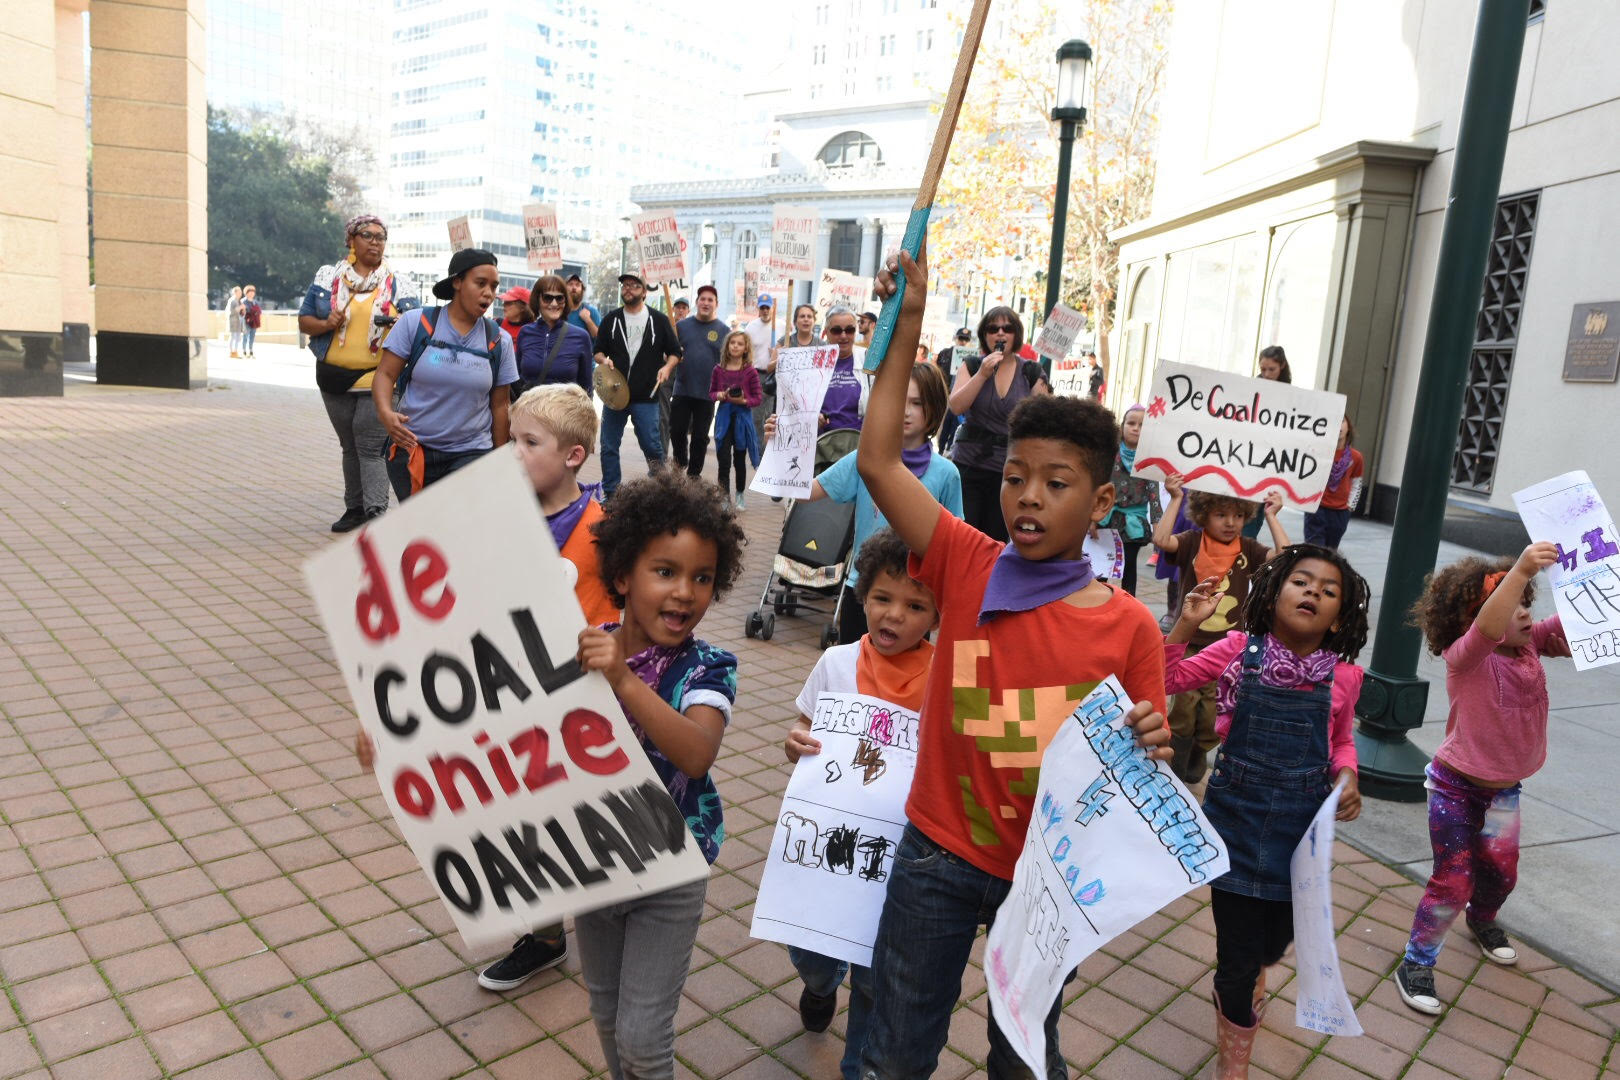 Youth march around Phil Tagami's Rotunda Building demanding the coal developer #DeCOALonize Oakland. Photo credit: Sunshine Velasco from Survival Media Agency